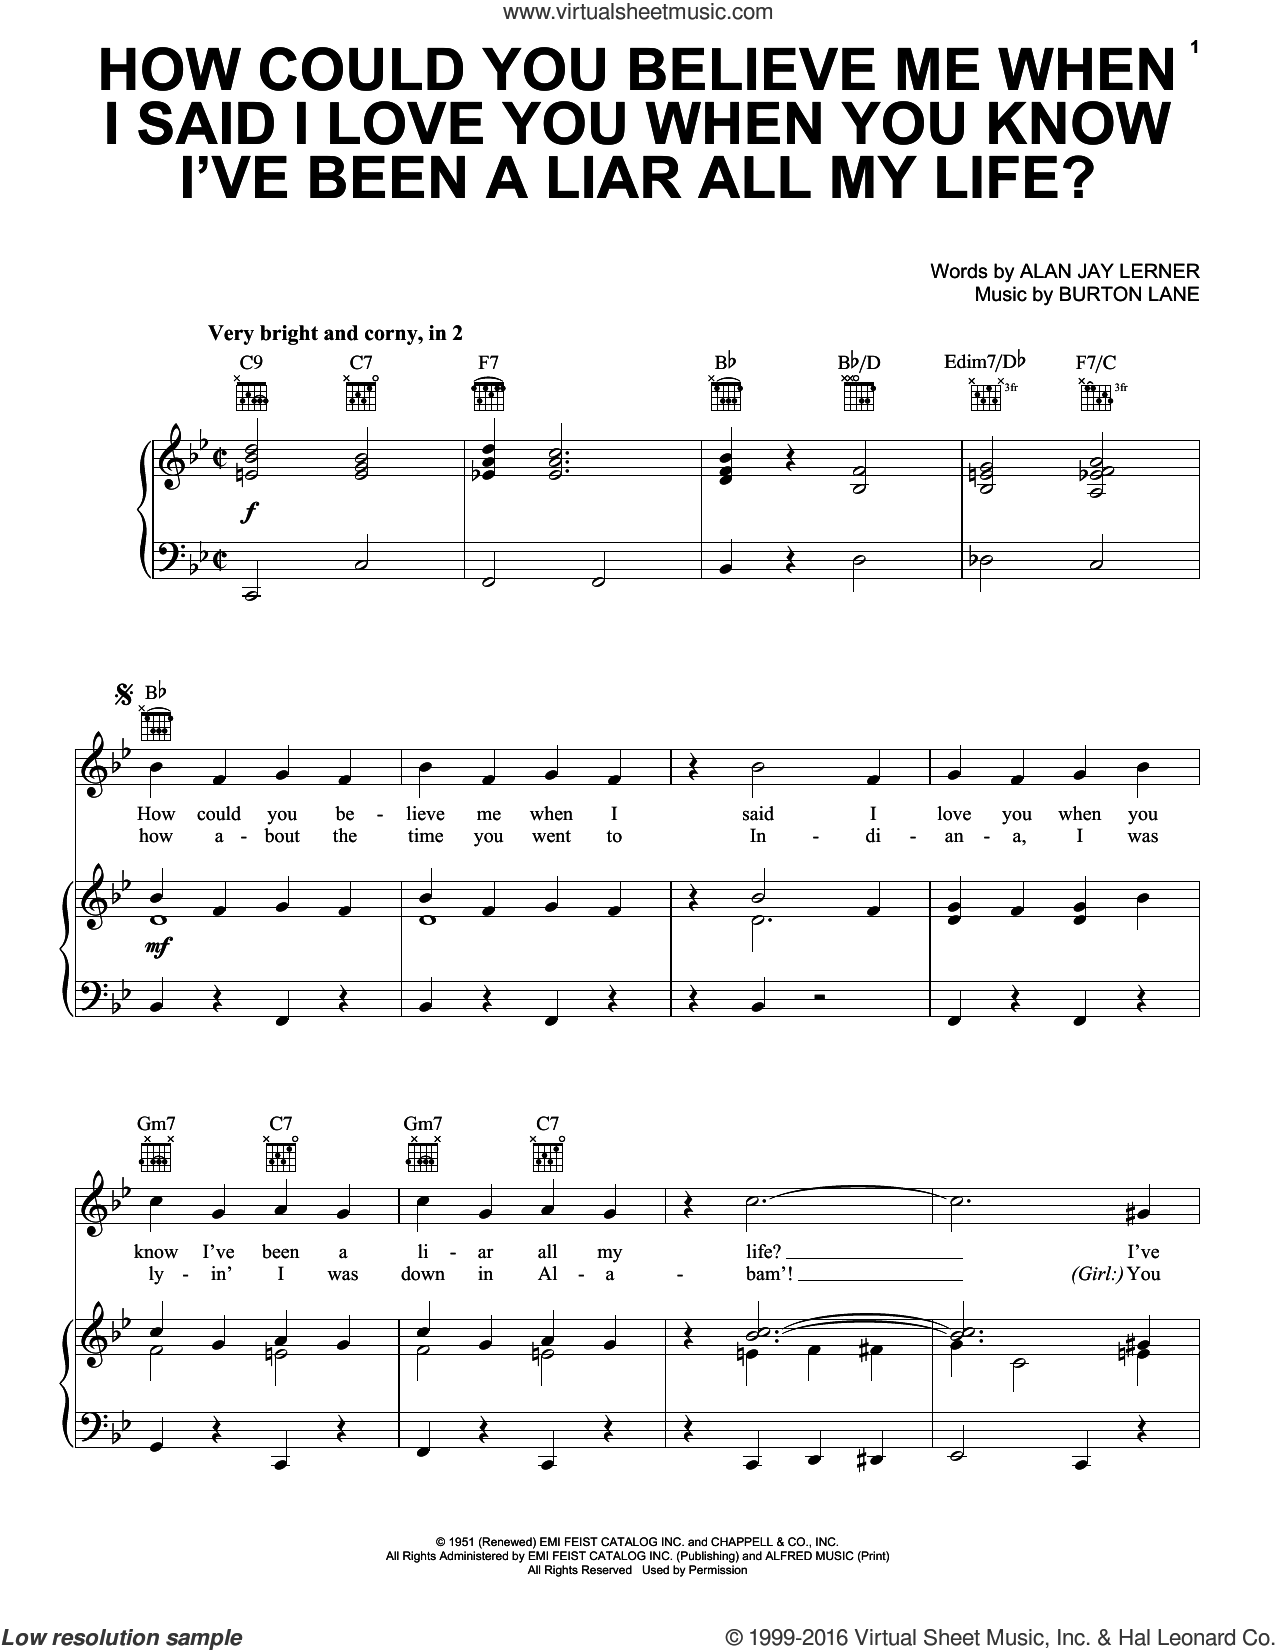 How Could You Believe Me When I Said I Love You When You Know I've Been A Liar All My Life? sheet music for voice, piano or guitar by Alan Jay Lerner and Burton Lane, intermediate skill level